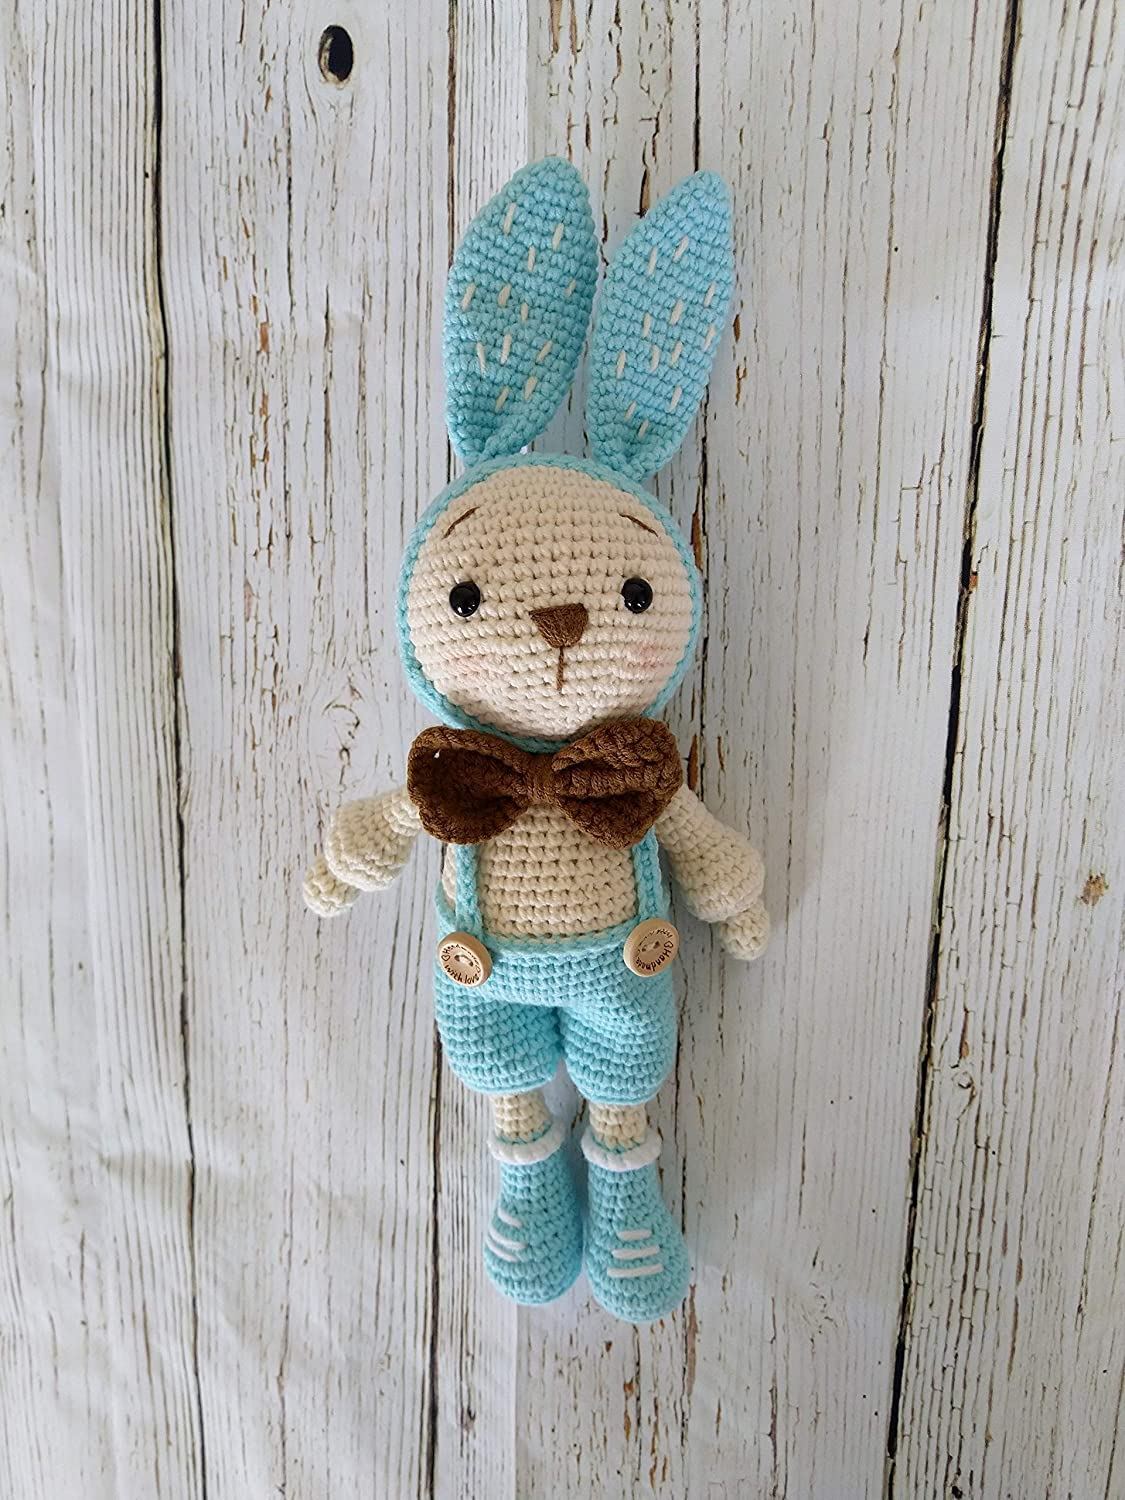 Free Crochet Patterns and Designs by LisaAuch: Free Crochet ... | 1500x1125